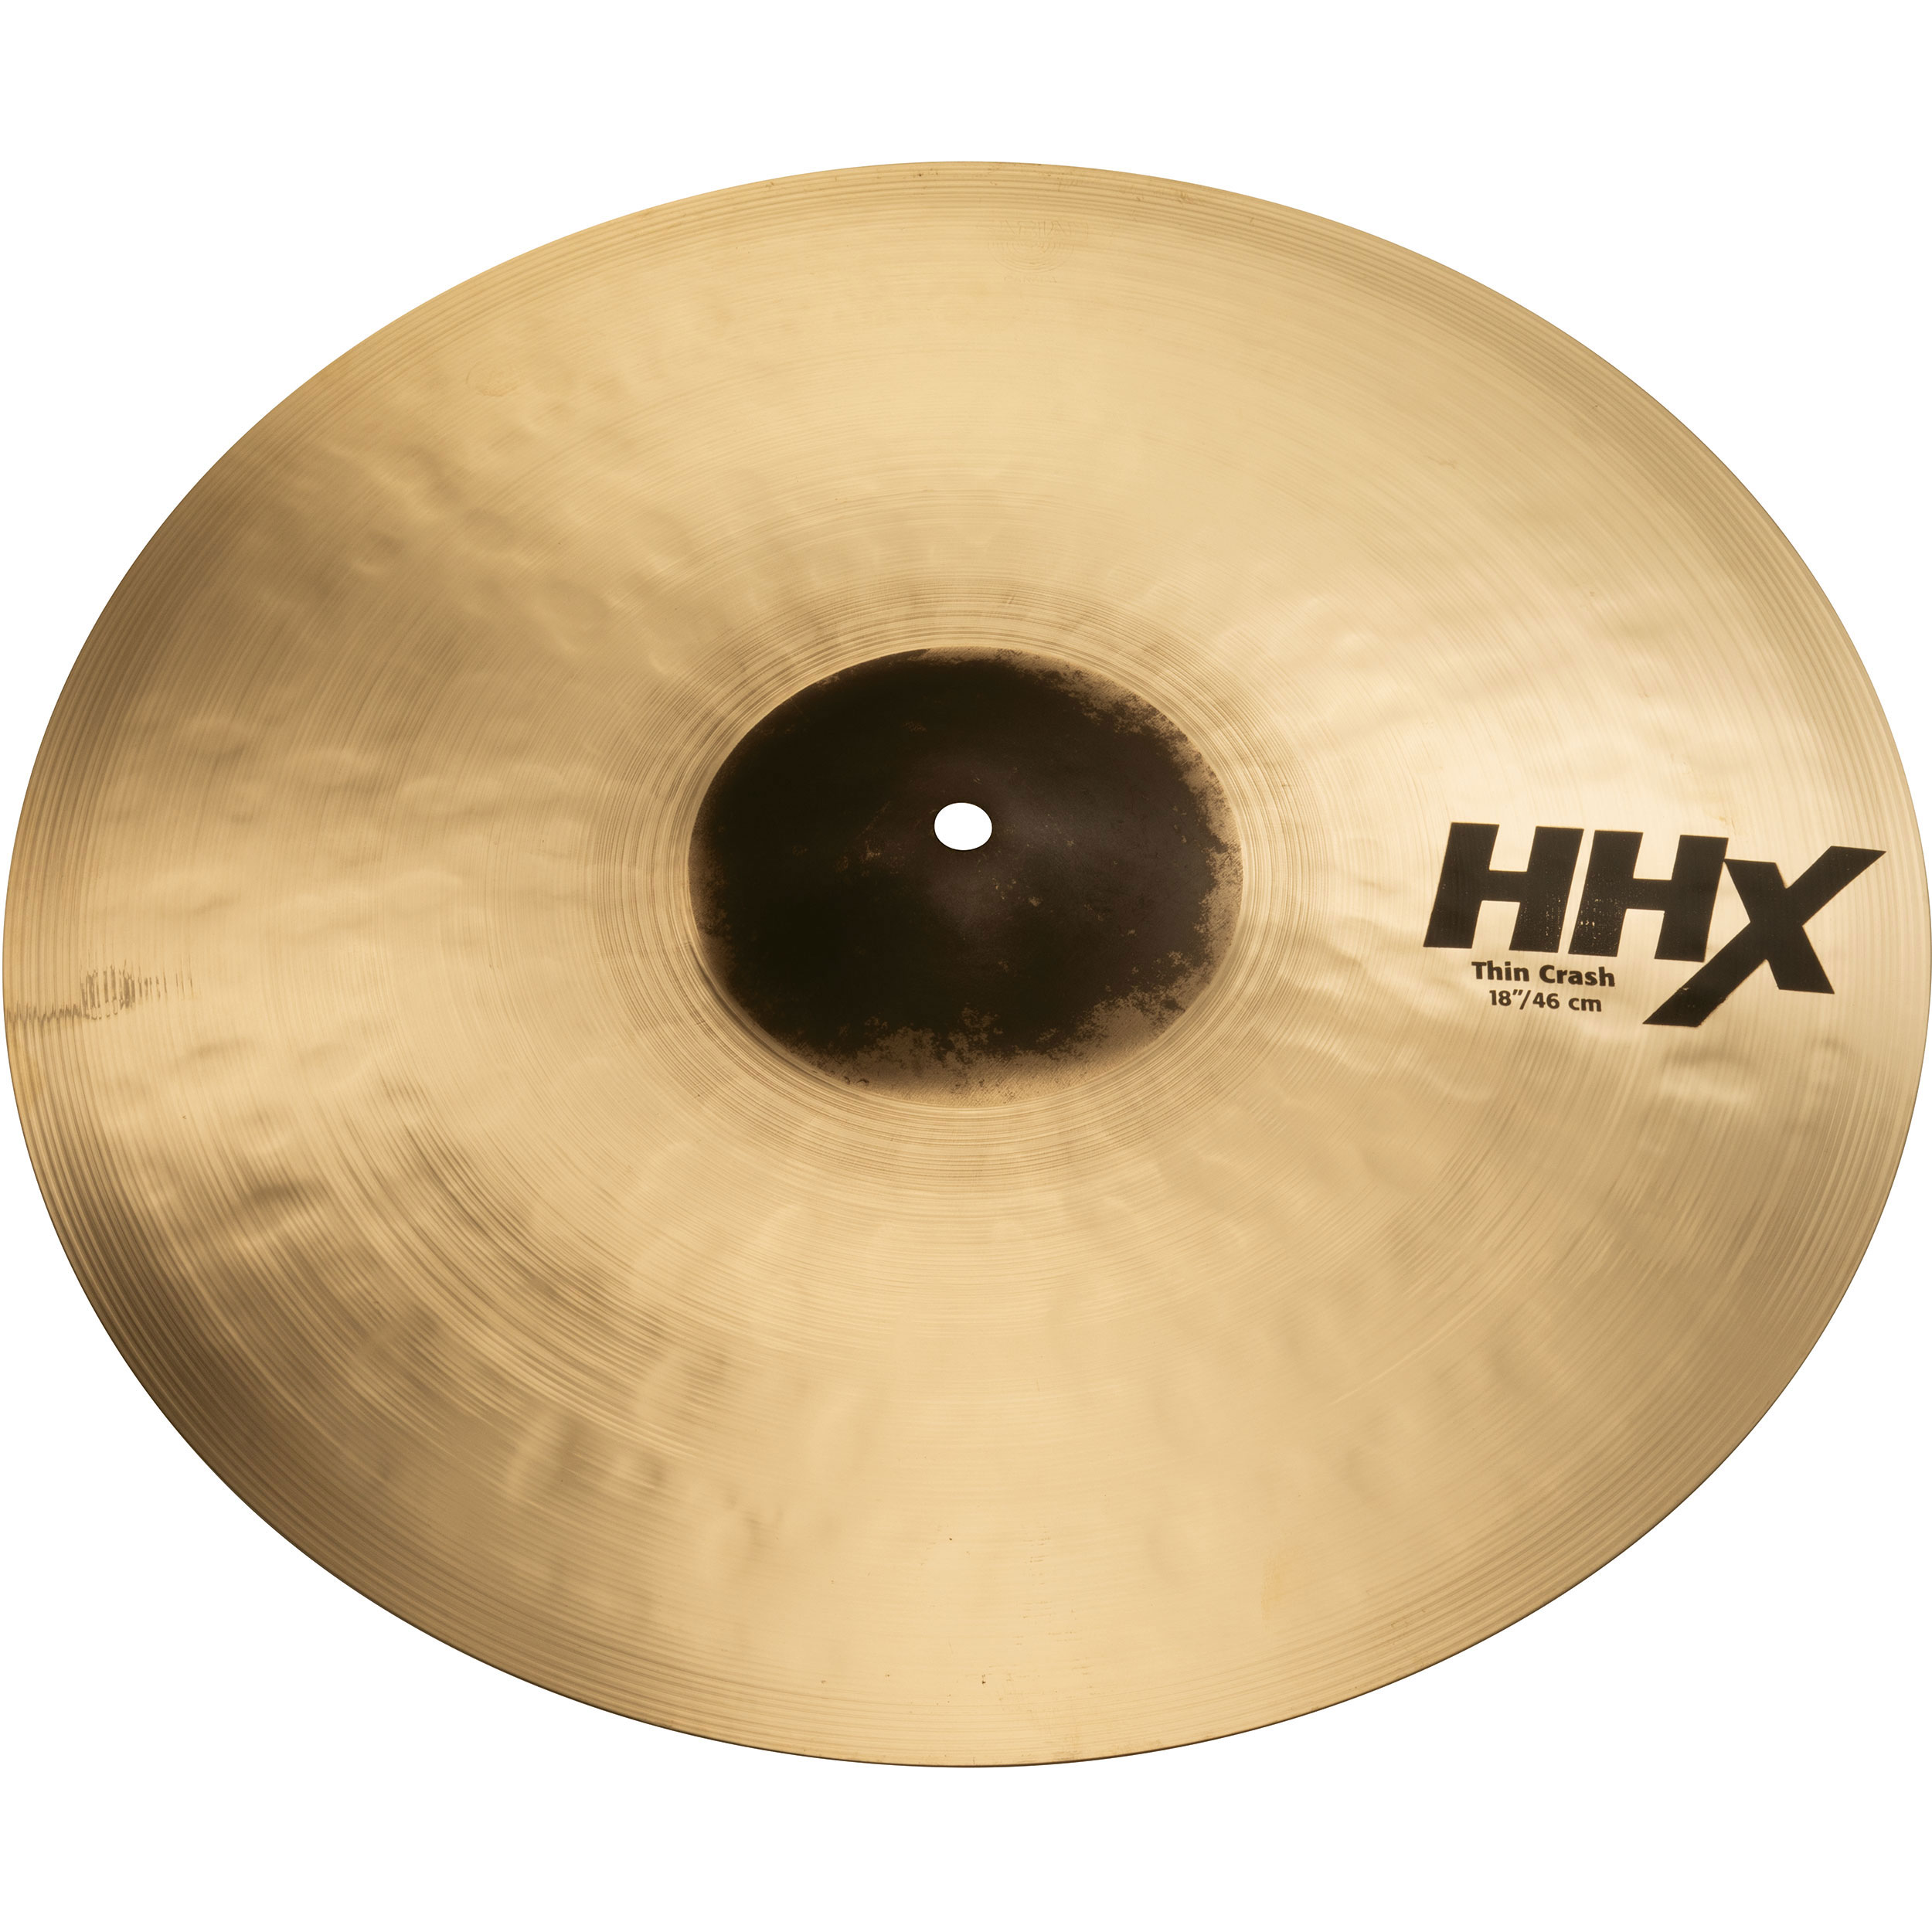 "Sabian 18"" HHX Thin Crash Cymbal"